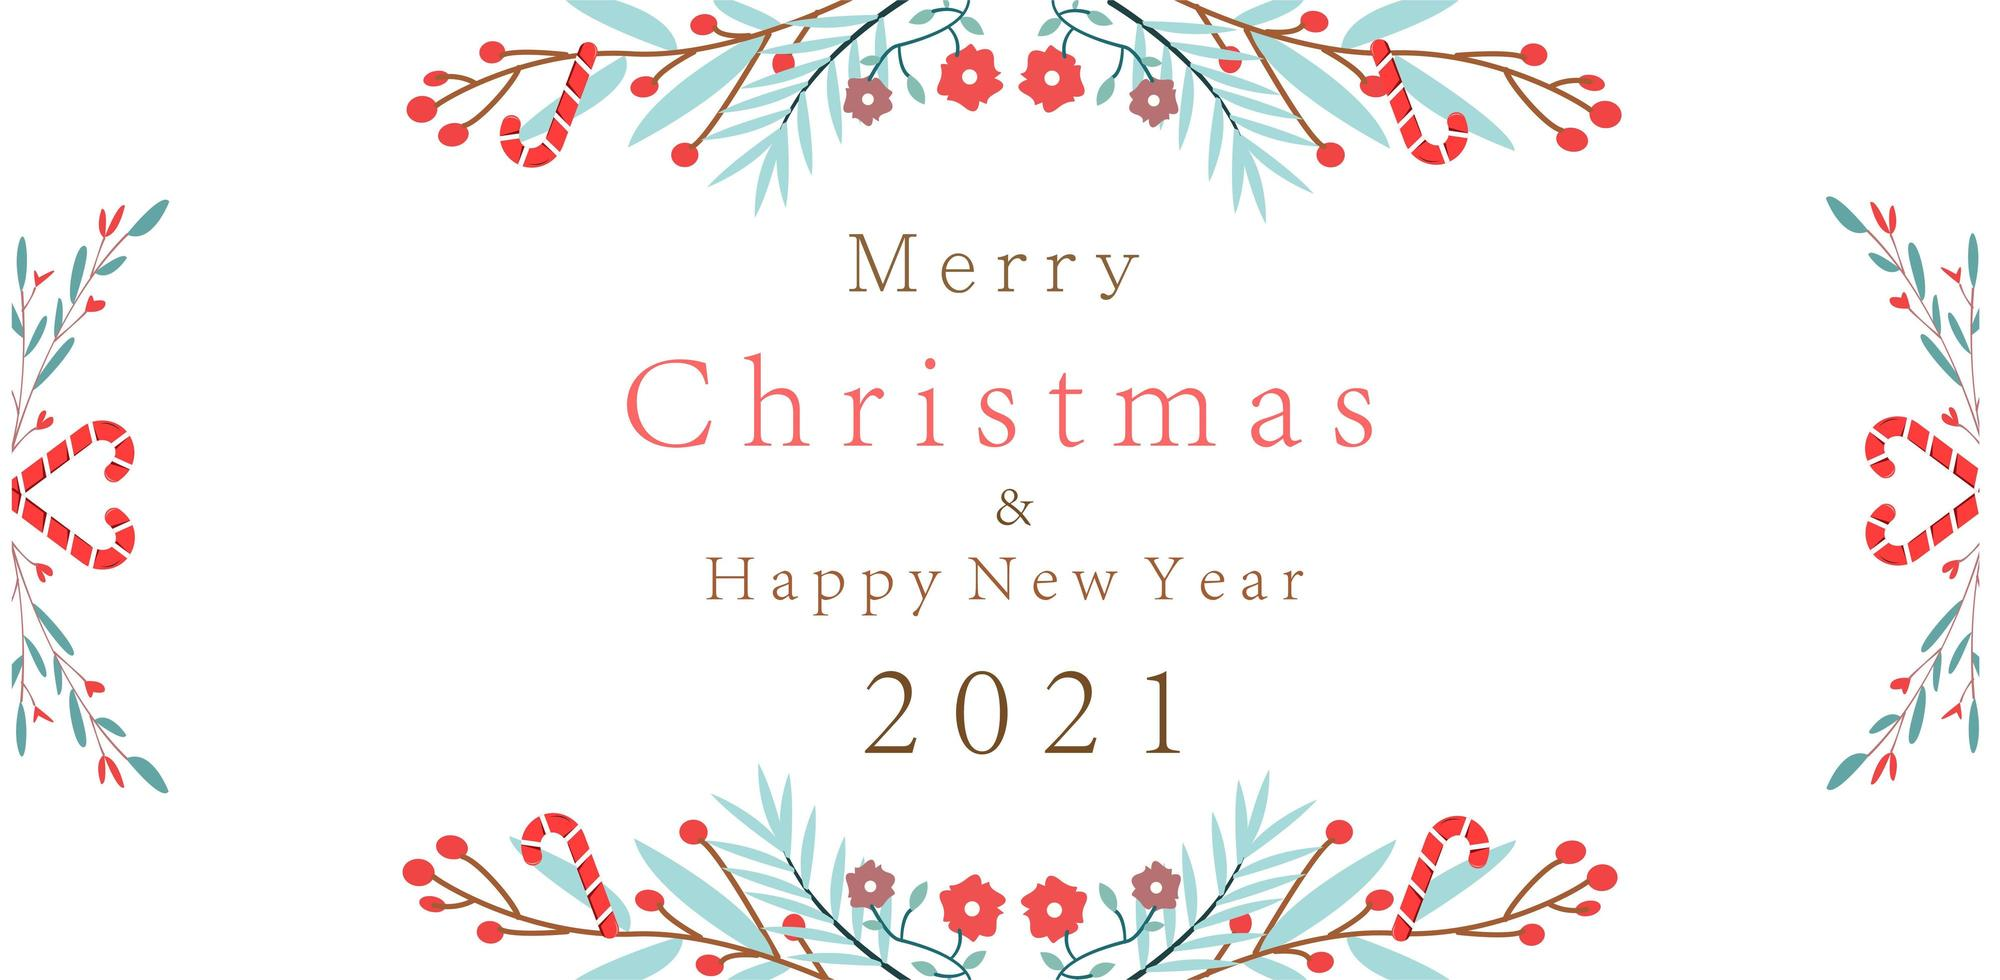 Merry Christmas New Year 2021 design with floral branches vector